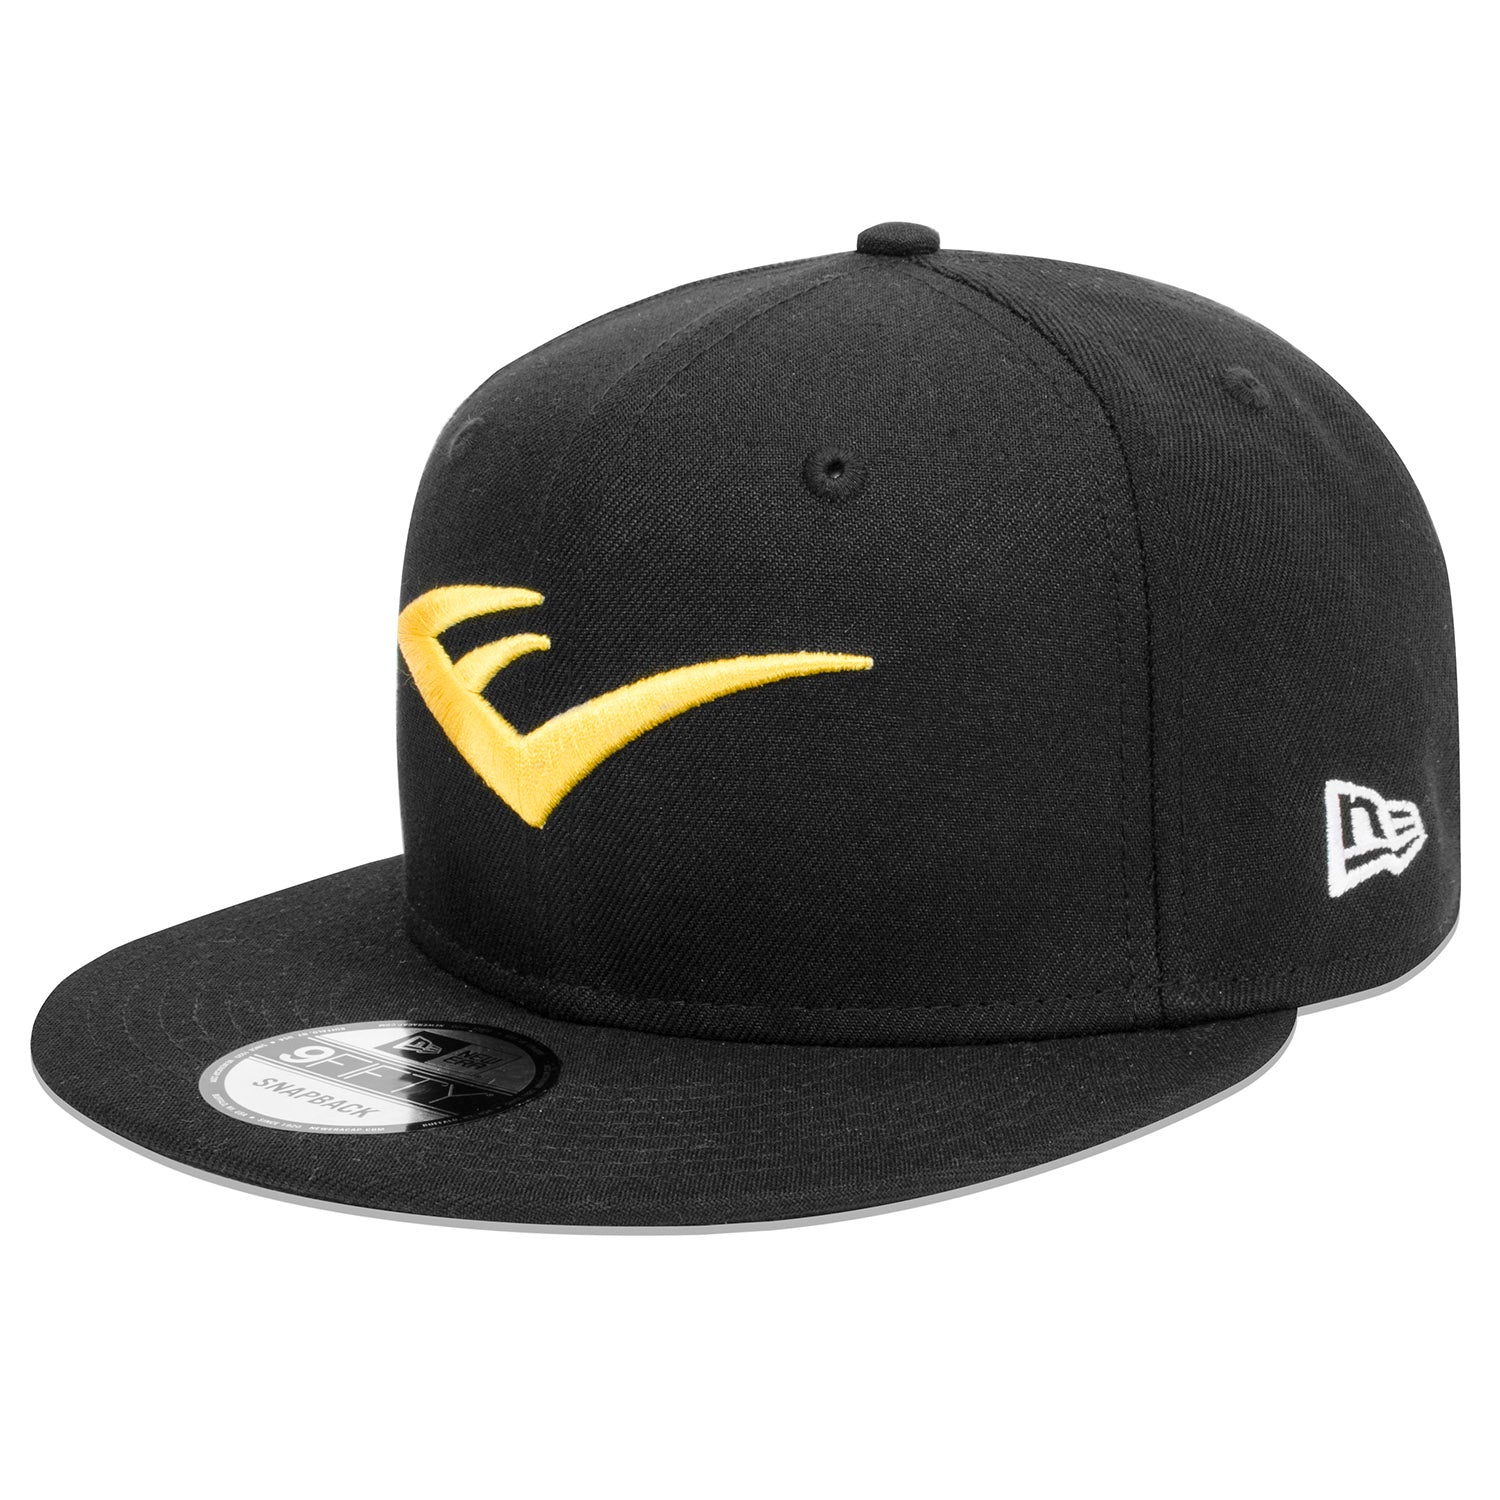 Everlast New Era 9FIFTY Black Snapback E Logo Cap by Everlast Canada